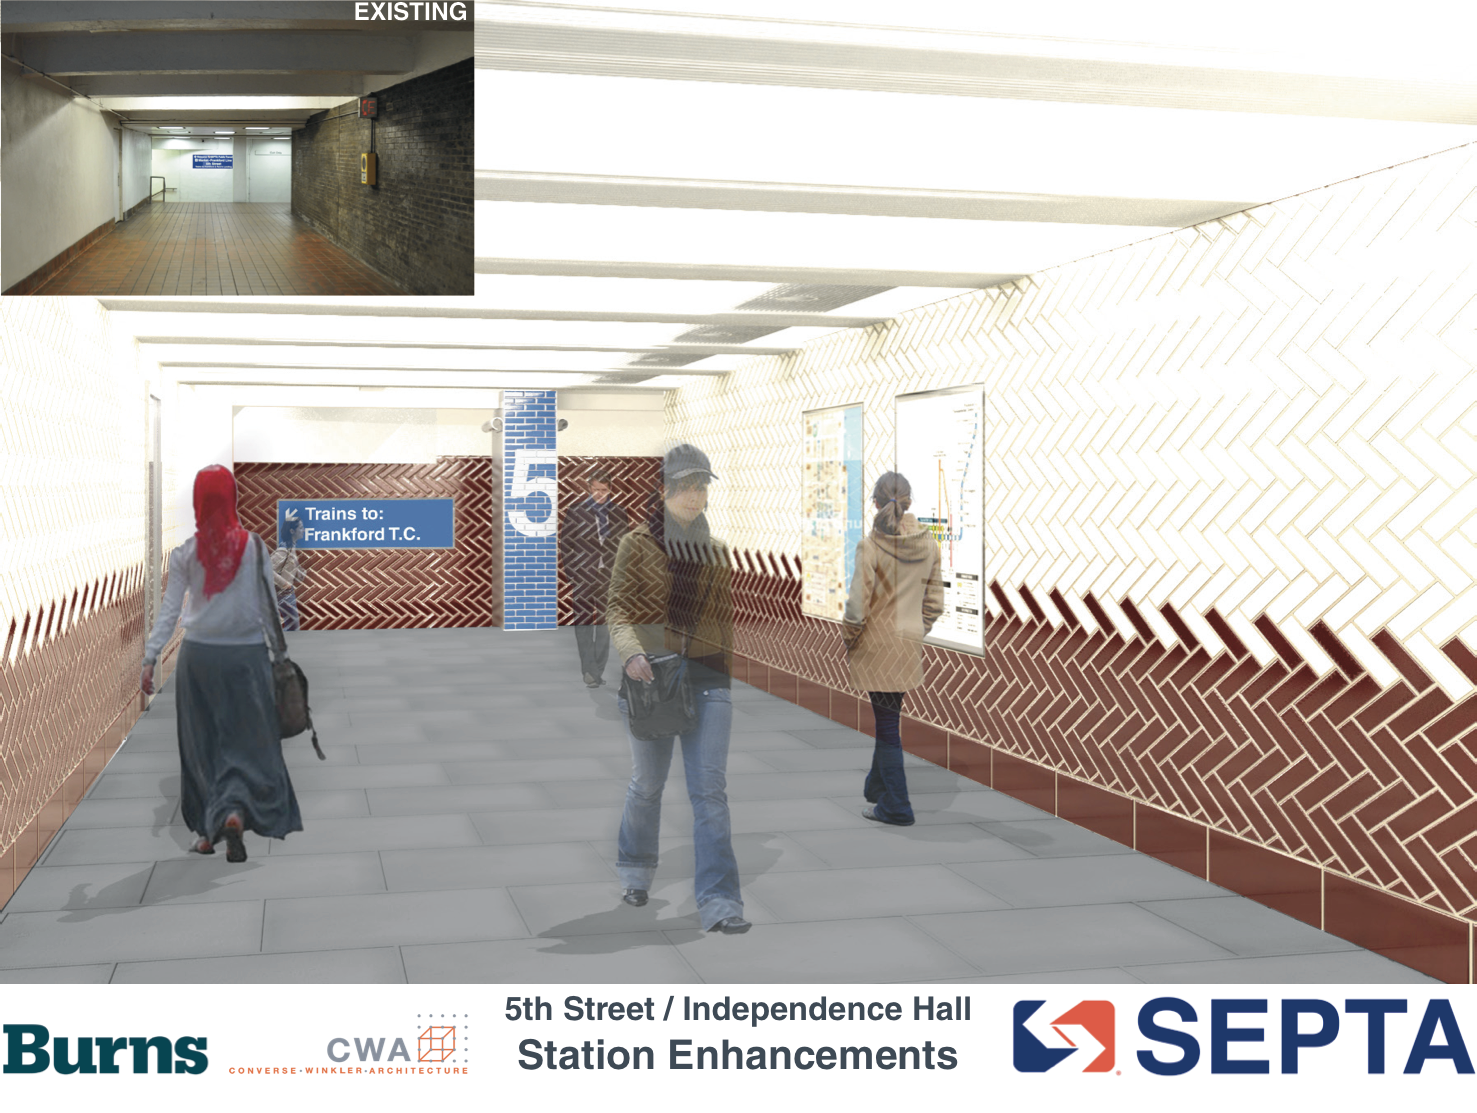 5th Street / Independence Hall: Mezzanine rendering | courtesy of SEPTA